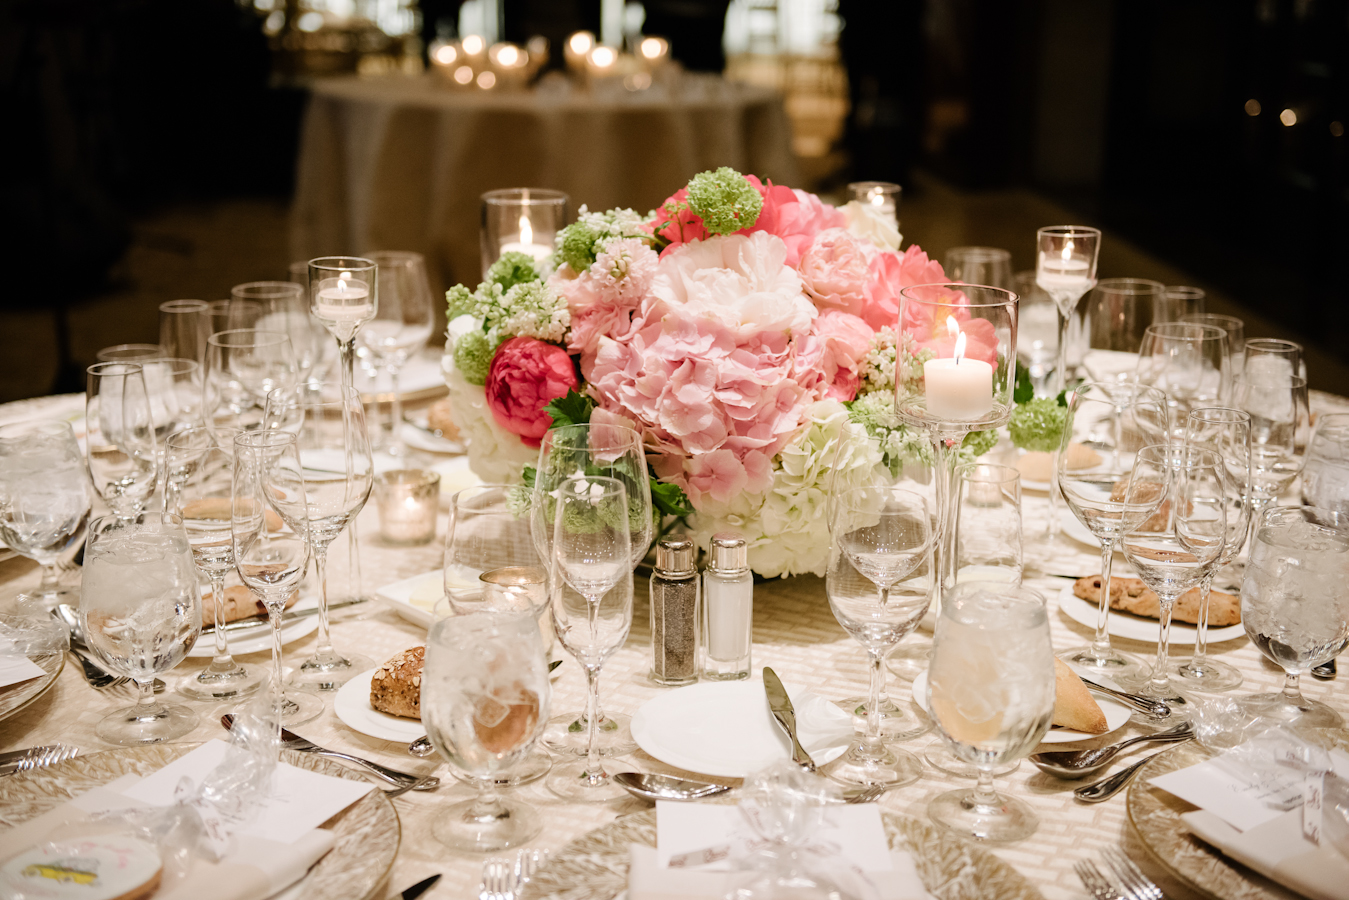 four seasons hotel wedding ang weddings and events brian hatton photography-37.jpg